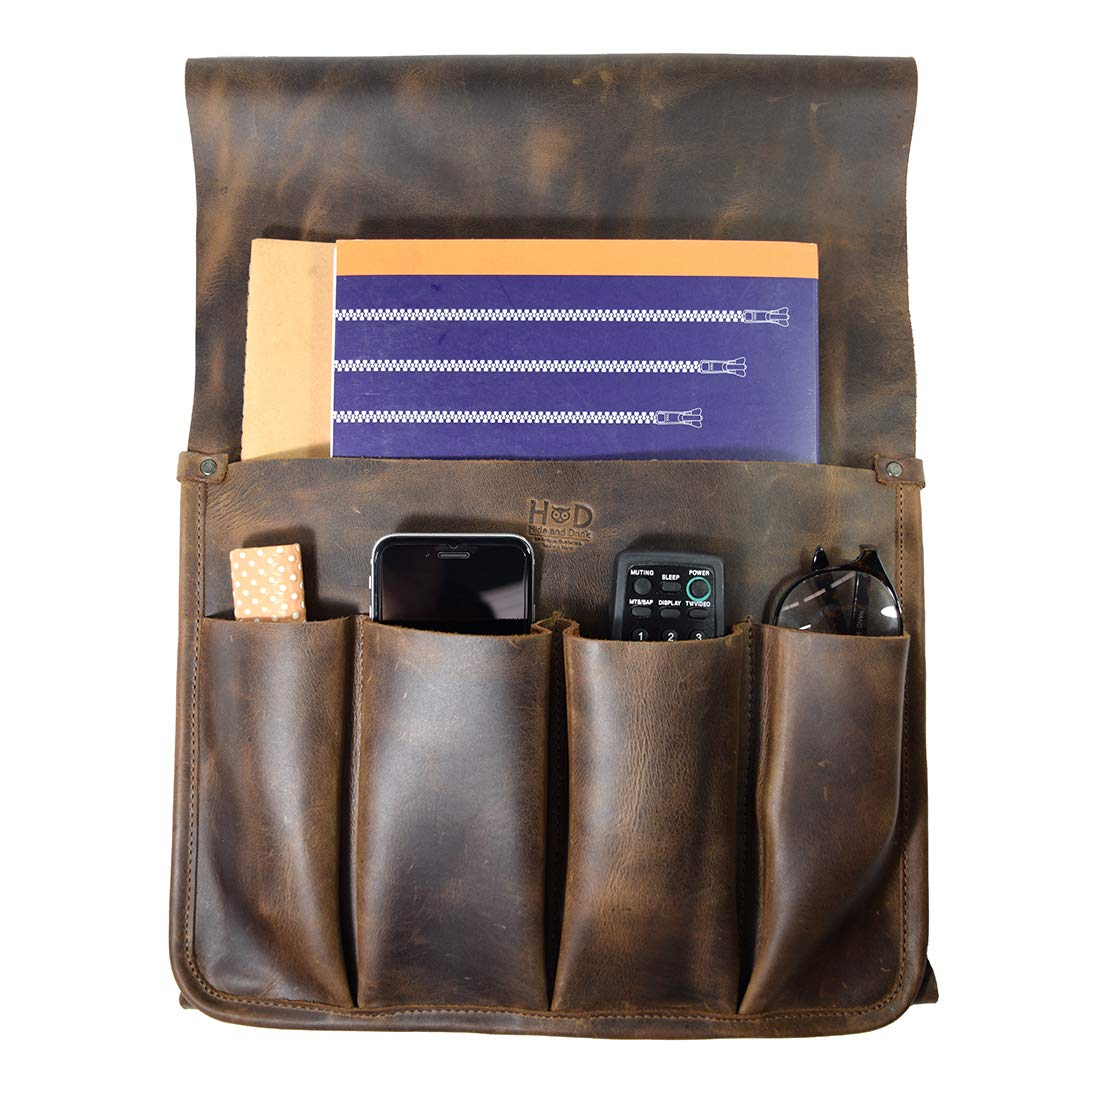 Hide & Drink, Durable Leather Remote Control & Magazine Holder/Couch Organizer/Sofa Armrest Pouch/Couch Potato Essentials, Handmade Includes 101 Year Warranty :: Bourbon Brown